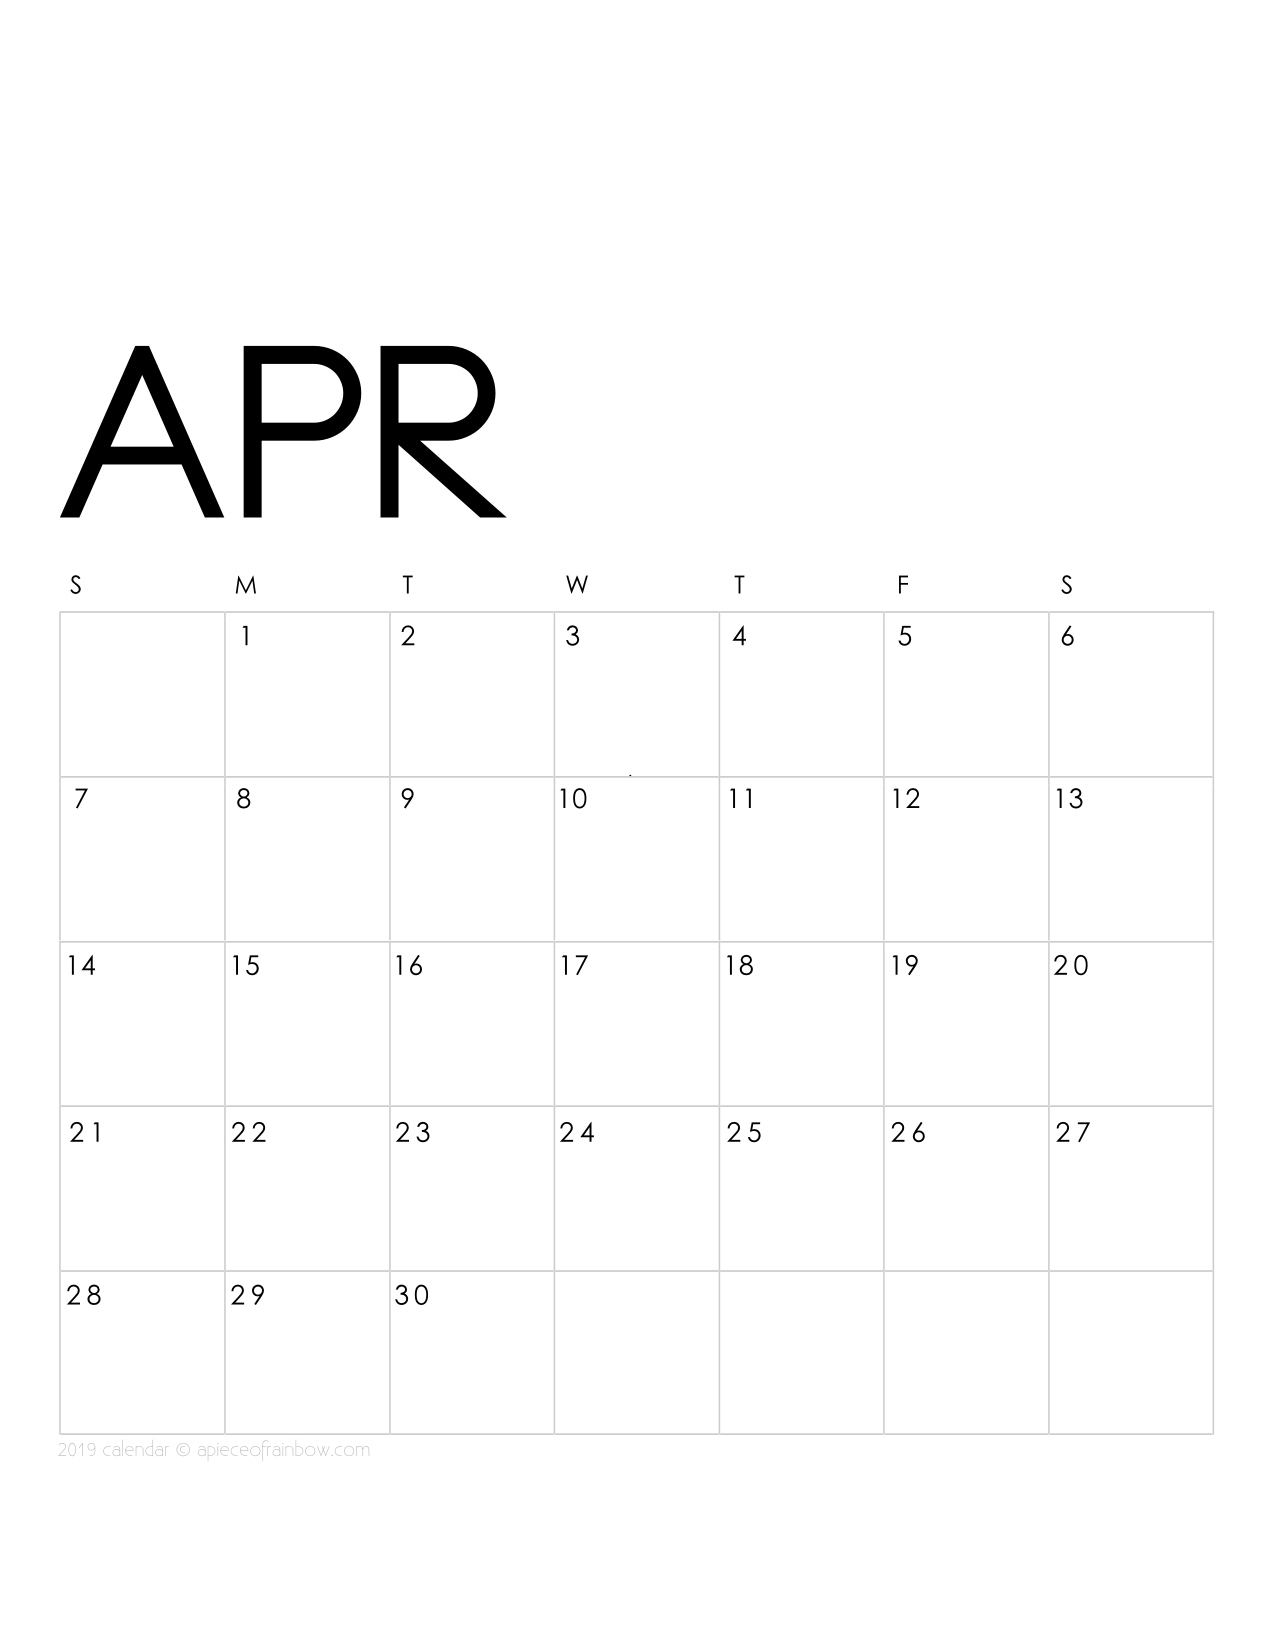 Stupendous image pertaining to april calender printable